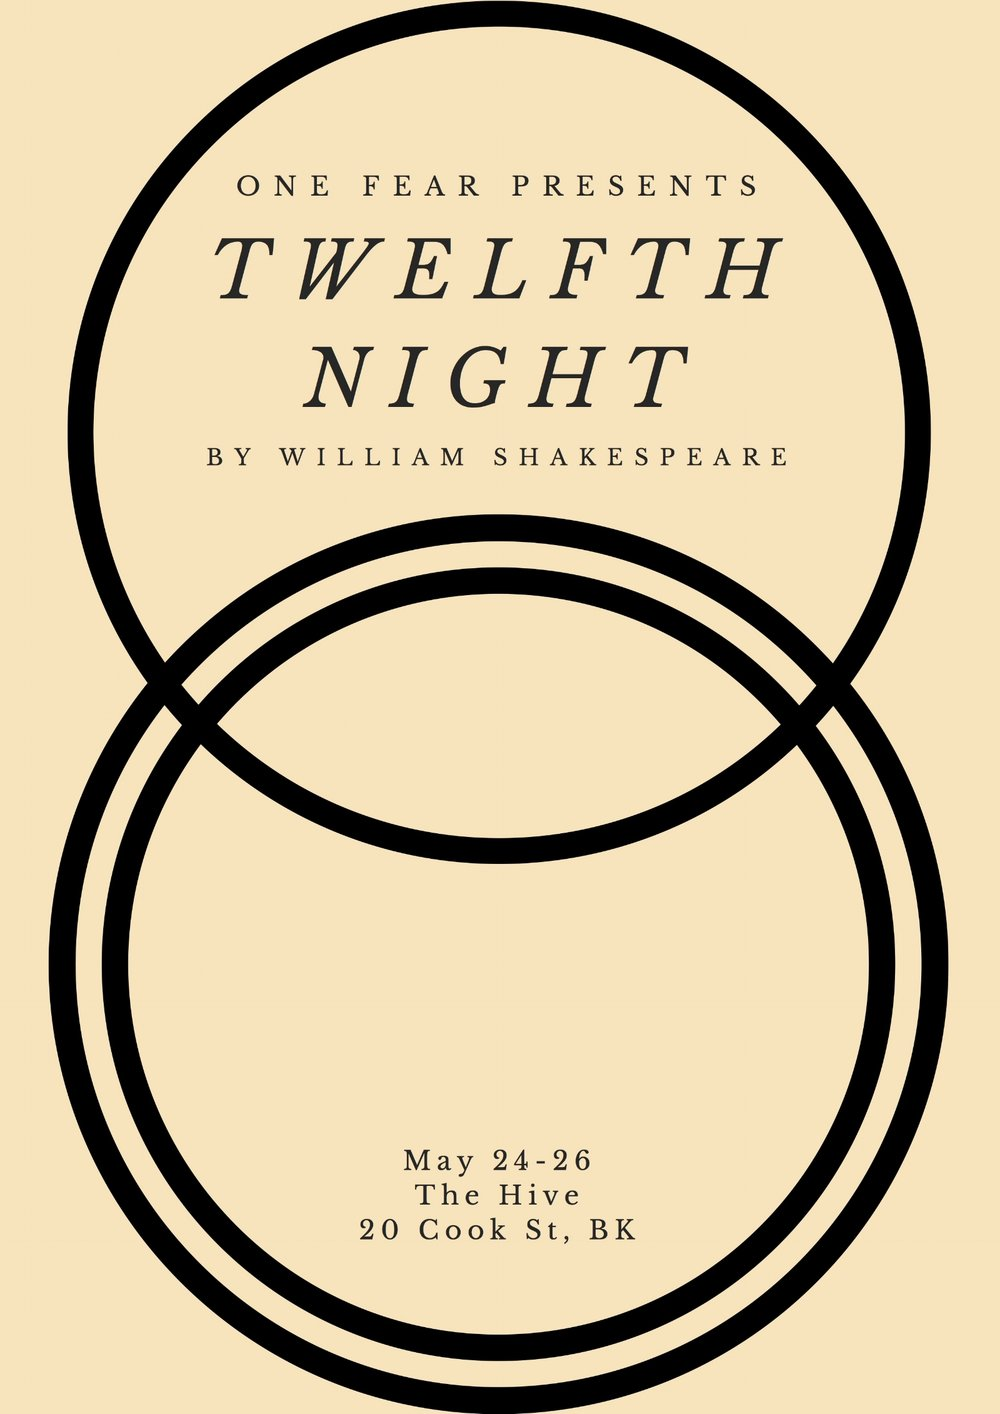 Twelfth Night  - - May 24 - 26, 2018 - One Fear Presents their second show of the season, Twelfth Night. Rachel will be playing Valentine and Antonio in the company's spring production!